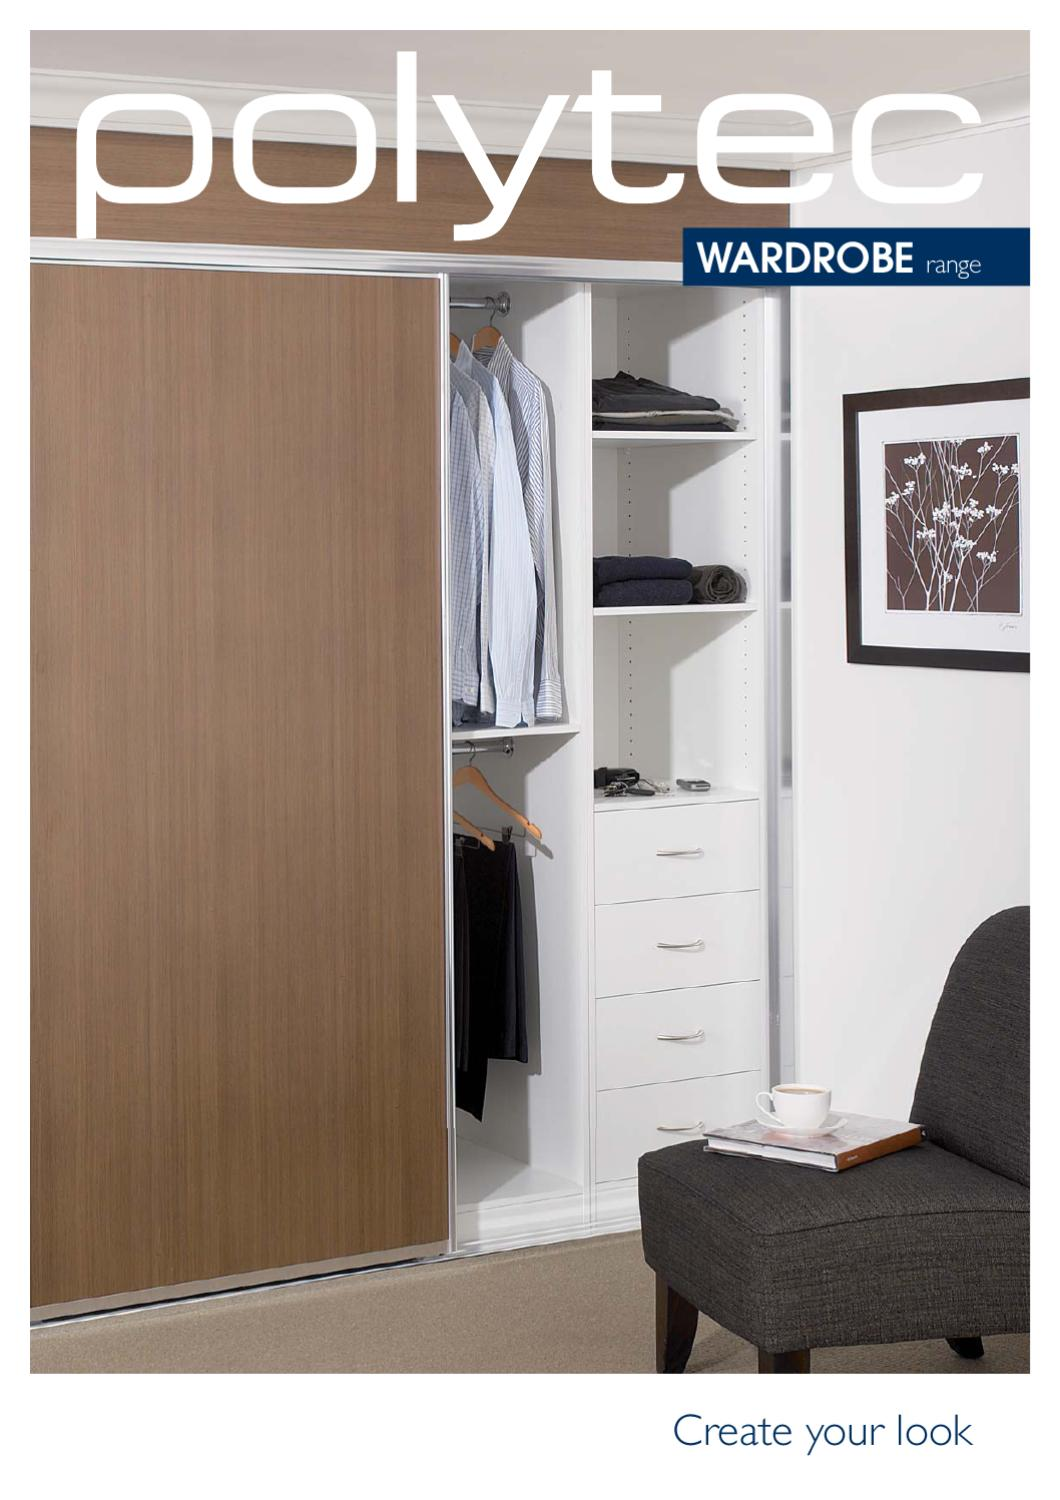 Polytec Wardrobe Range By Bestfor Less